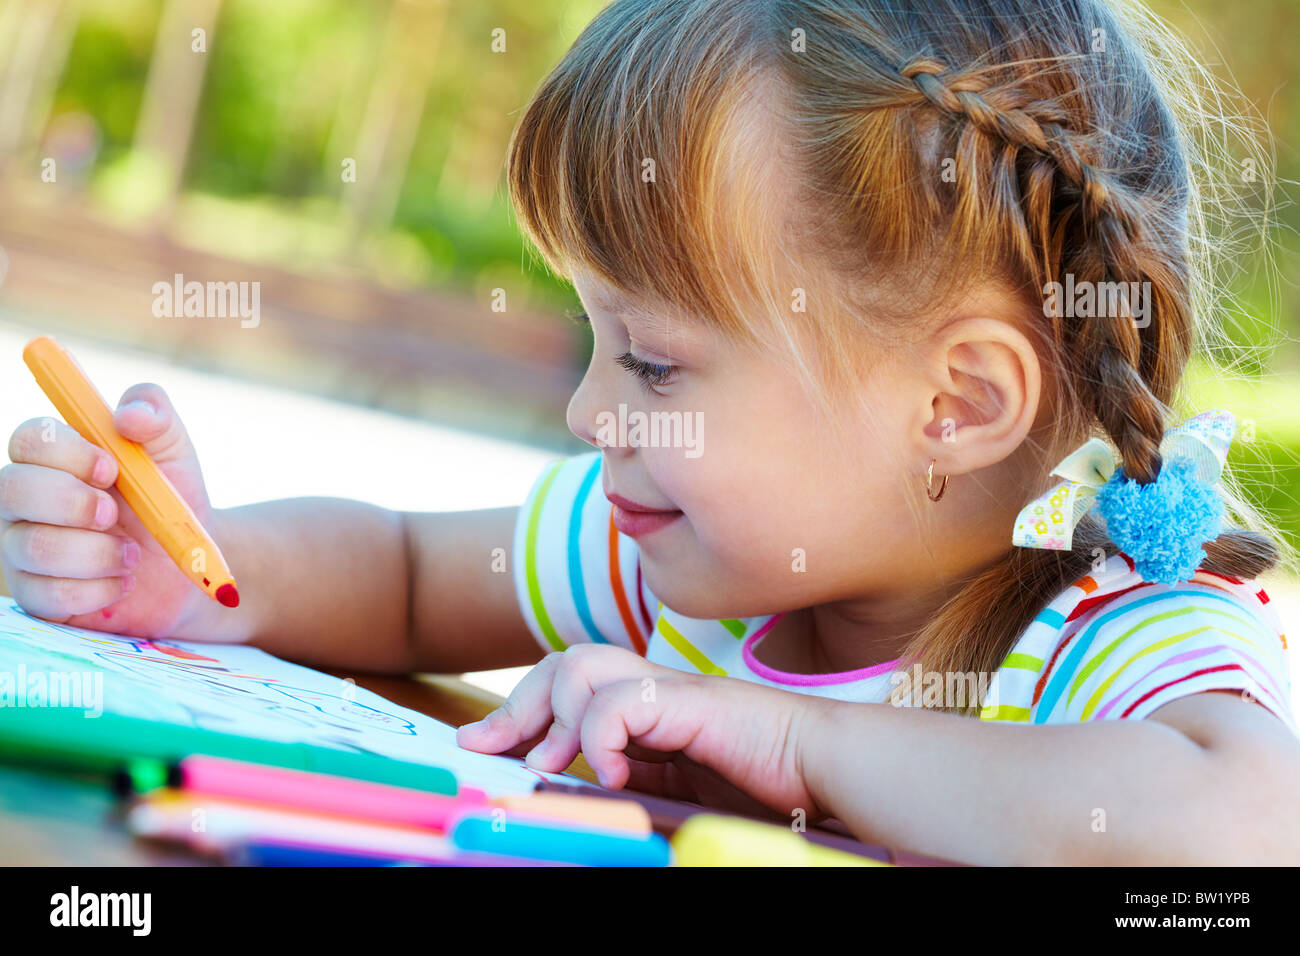 Portrait of cute girl interested in drawing with highlighters - Stock Image